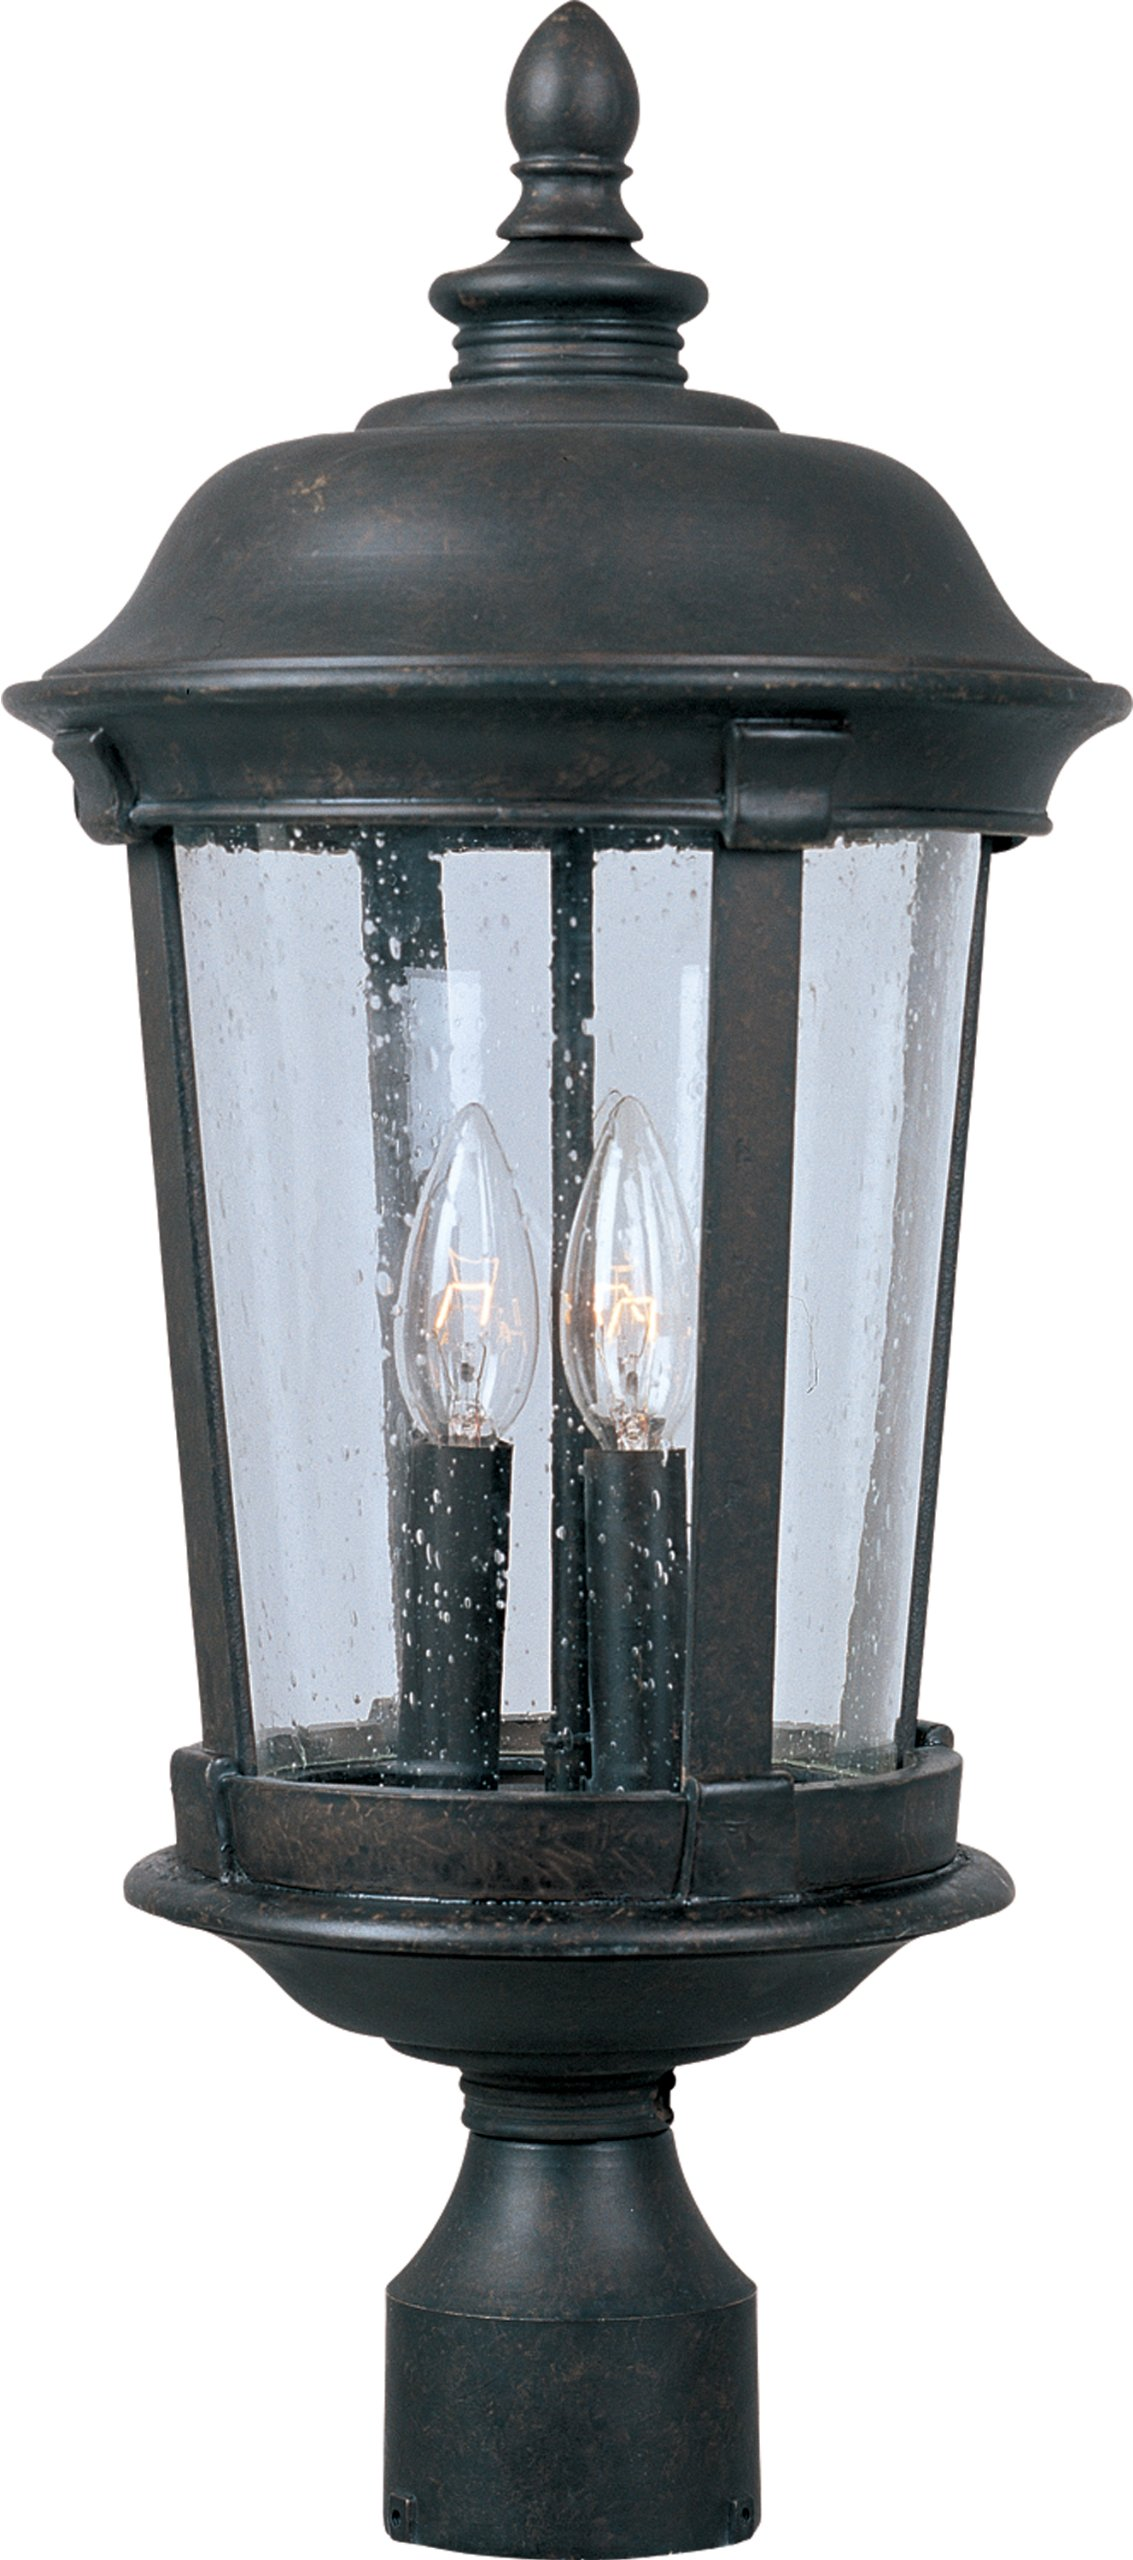 Maxim 40092CDBZ Dover VX 3-Light Outdoor Pole/Post Lantern, Bronze Finish, Seedy Glass, CA Incandescent Incandescent Bulb , 40W Max., Dry Safety Rating, Fabric Shade Material, Rated Lumens